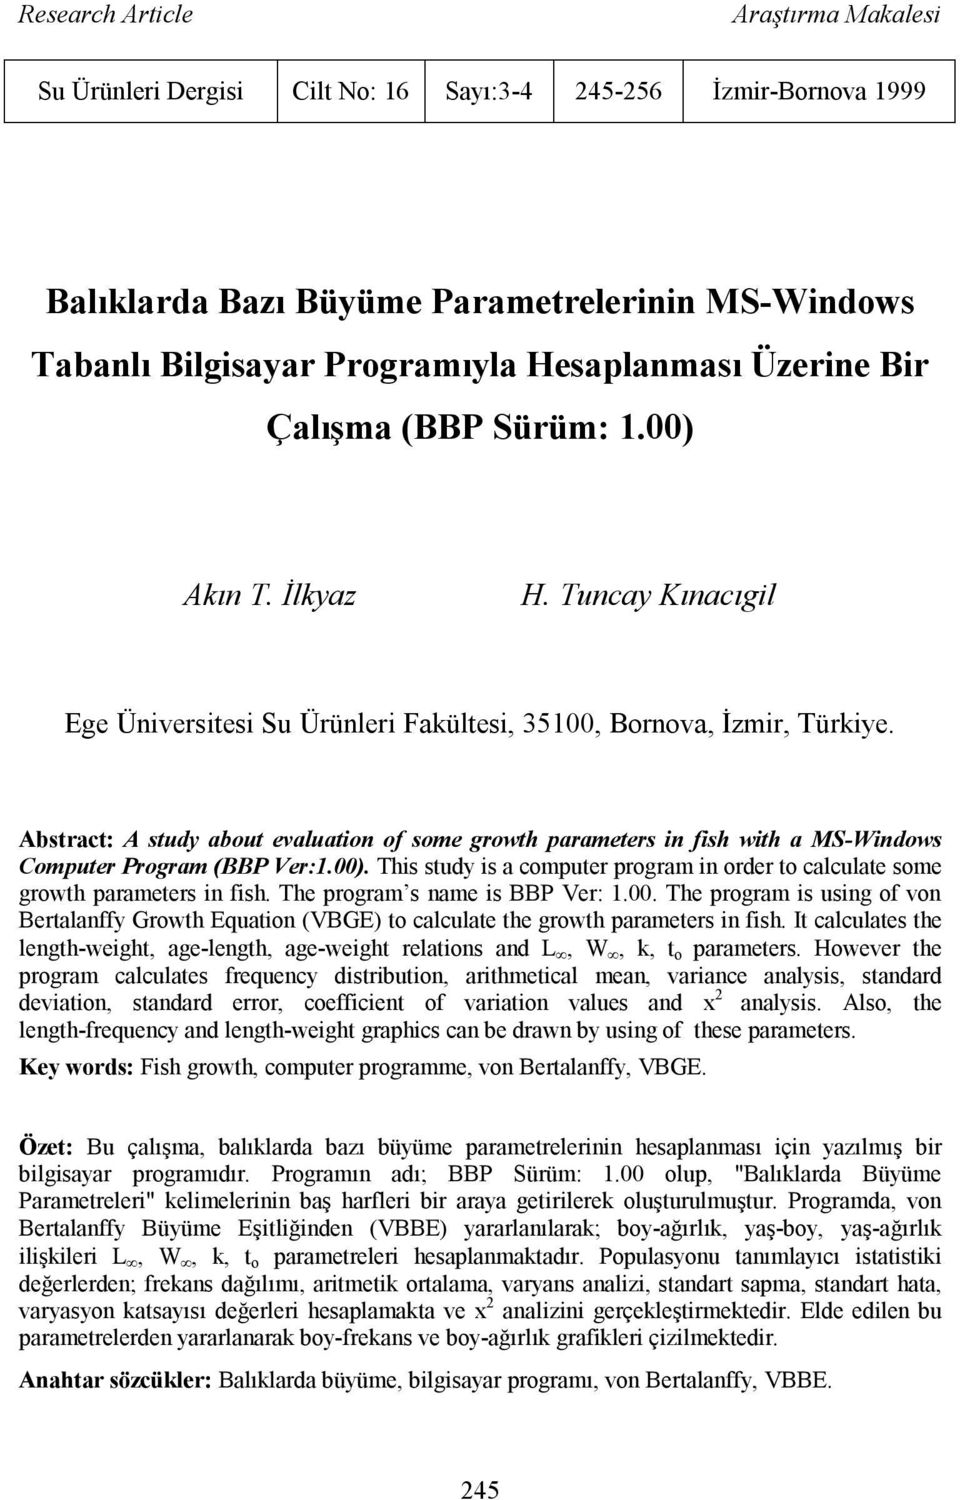 Abstract: A study about evaluatio of some growth parameters i fish with a MS-Widows Computer Program (BBP Ver:1.00. This study is a computer program i order to calculate some growth parameters i fish.